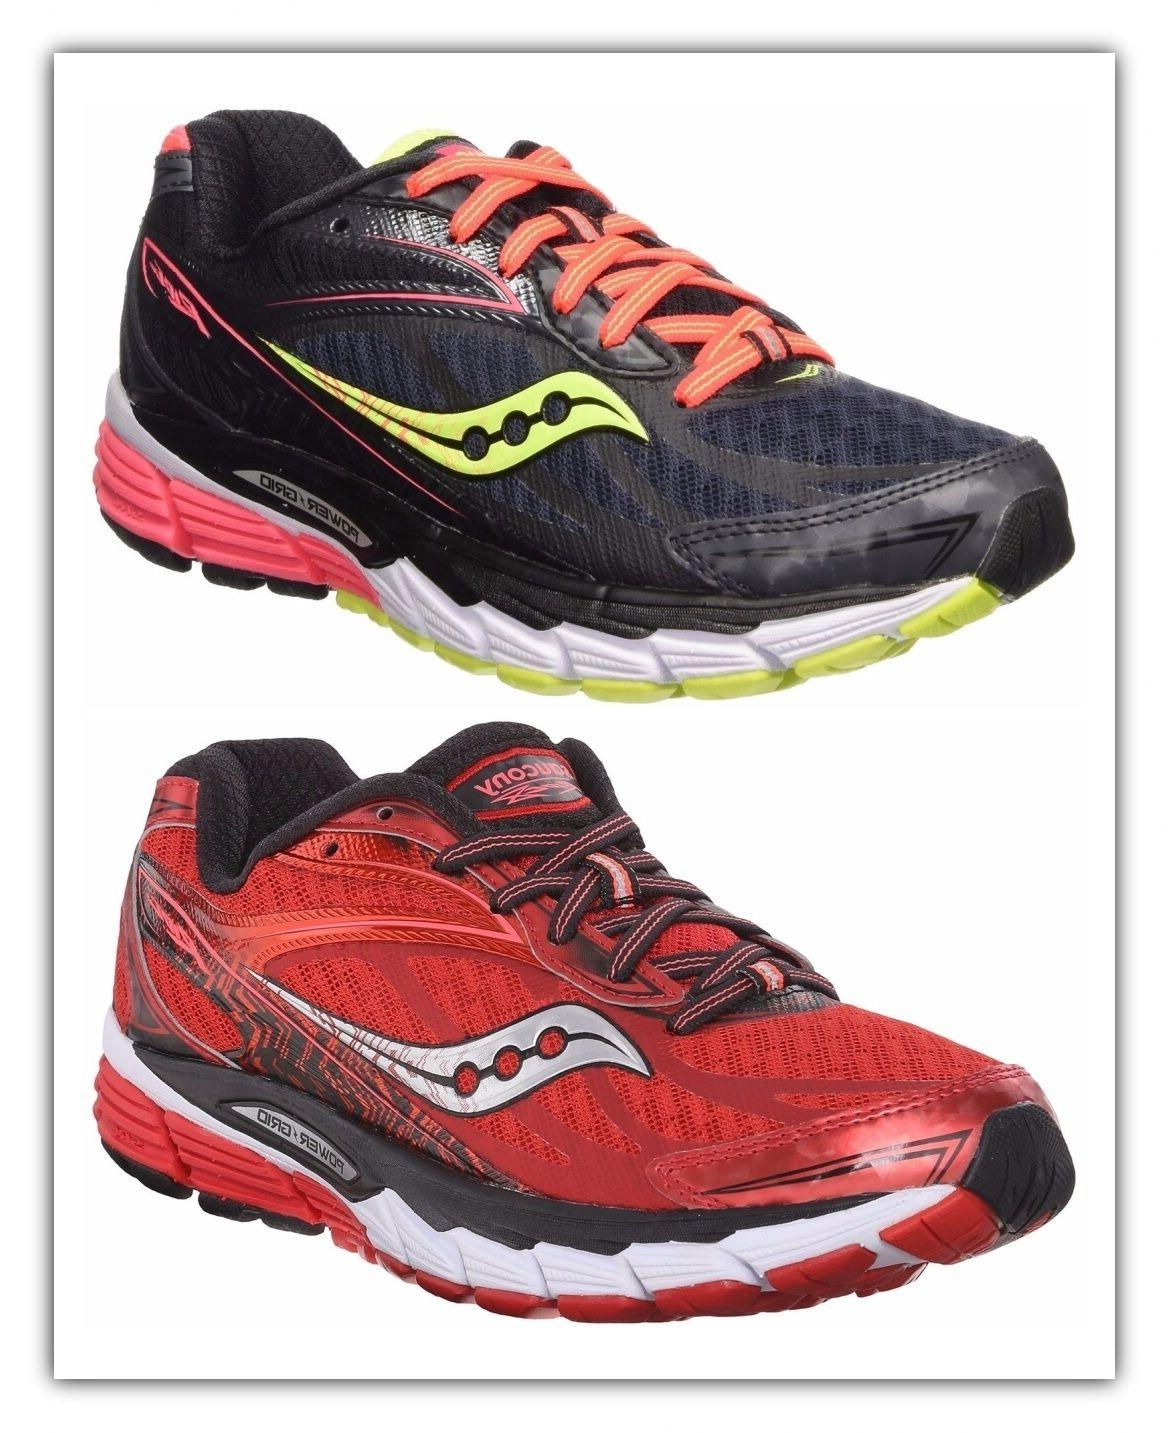 ride 8 womens running shoes sneakers neutral